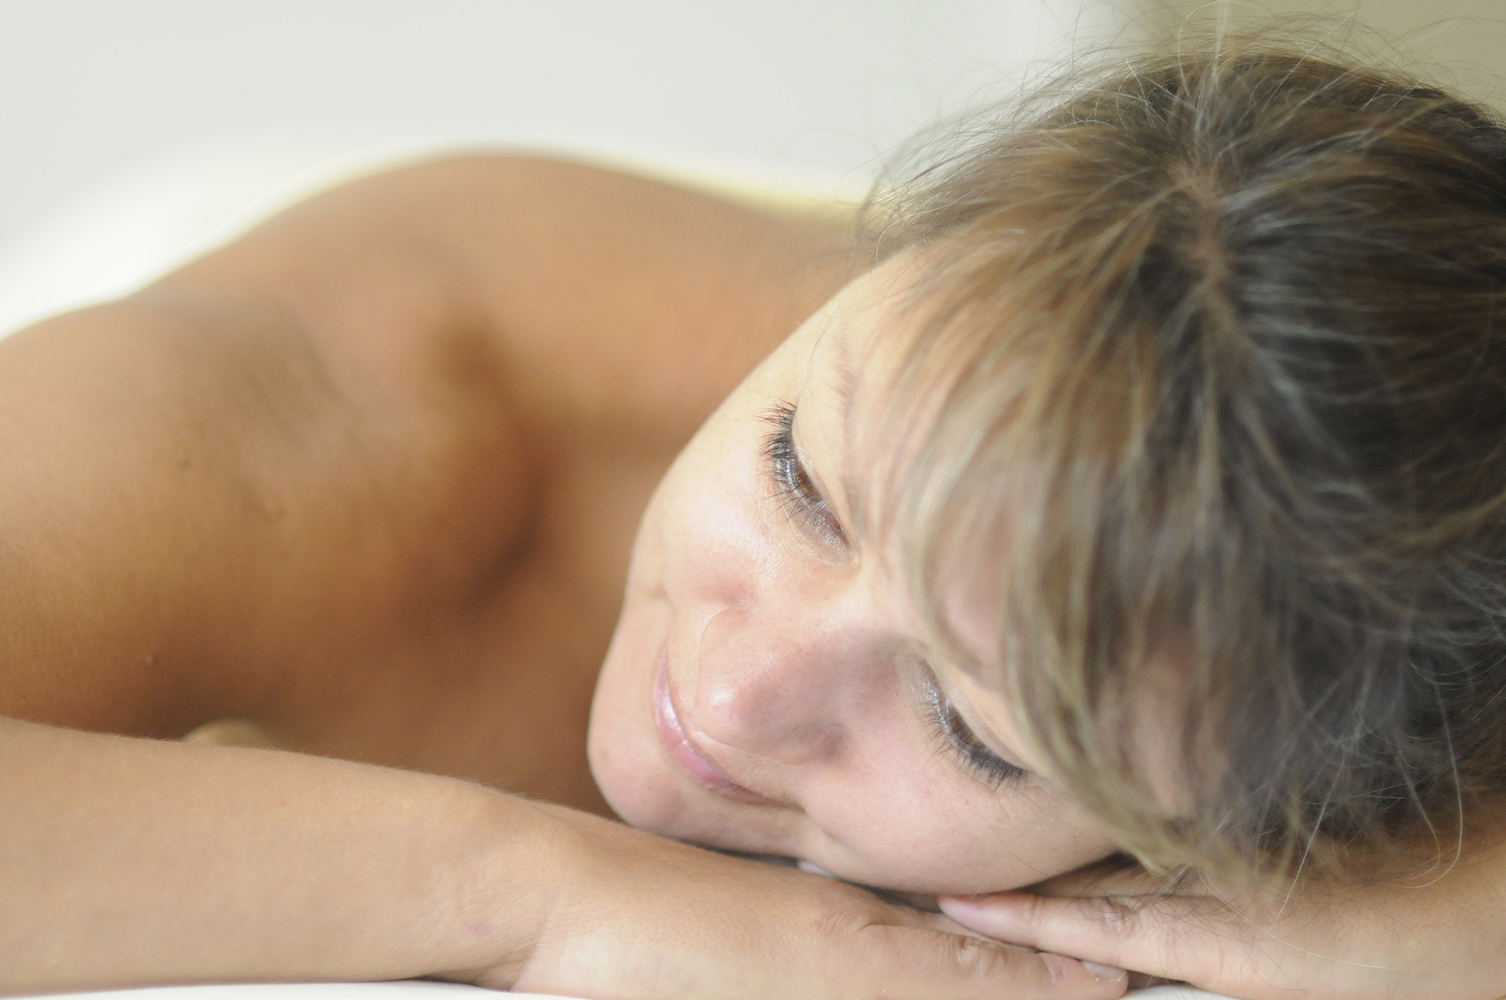 Therapeutic massage can improve overall health, reduce stress and relieve muscle tension.